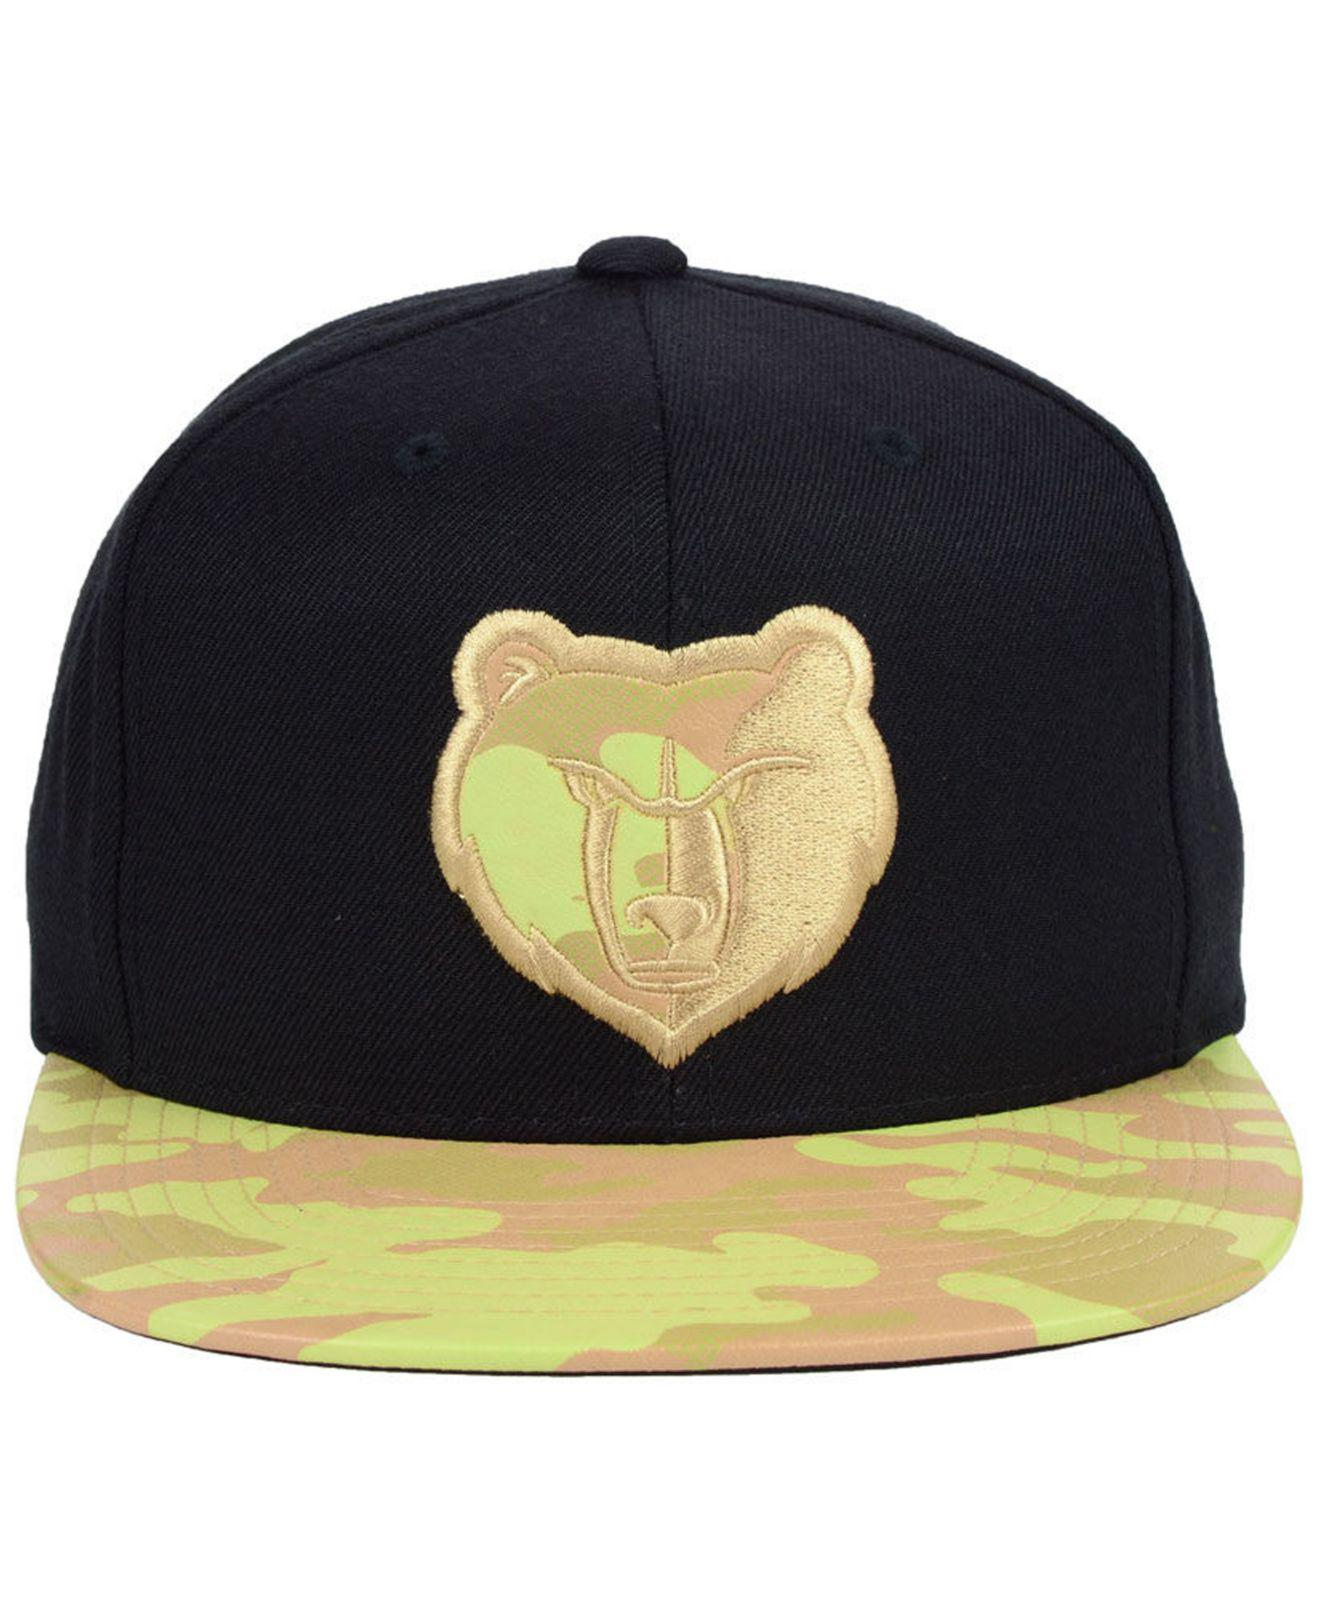 size 40 8f903 5ae6a ... hot lyst mitchell ness memphis grizzlies natural camo snapback cap in  black for men 0b98e dd582